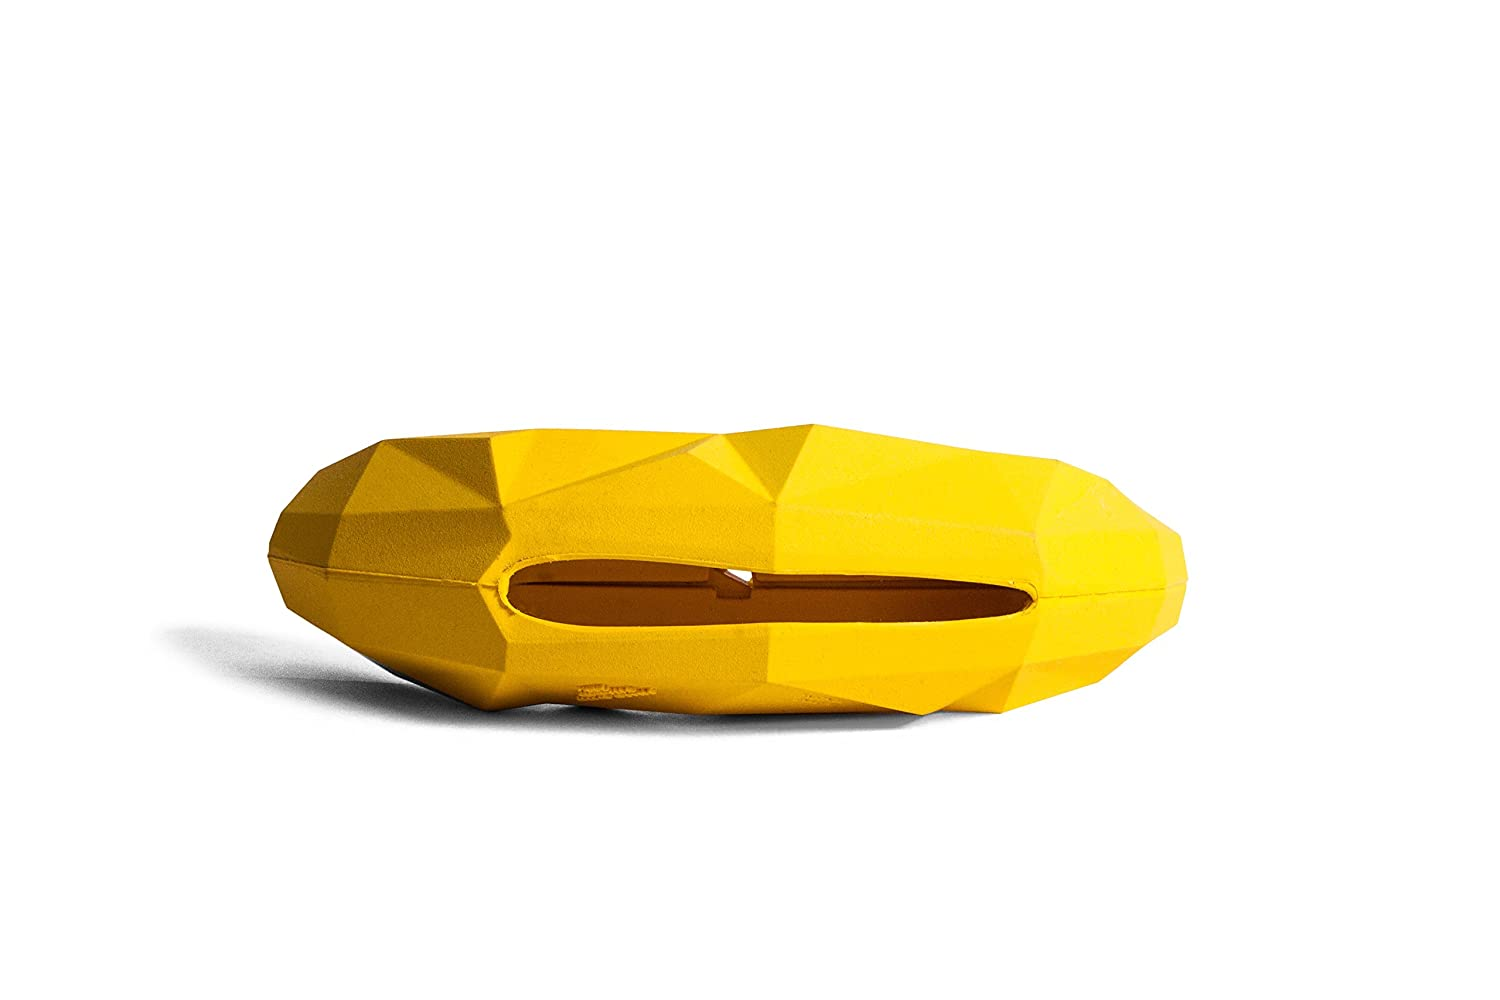 Pet Supplies : ZEE.DOG Super Banana | Dog Toy | Ultra Durable | Non-Toxic | Tough Rubber | Treat Dispensing | Teeth Cleaning : Amazon.com